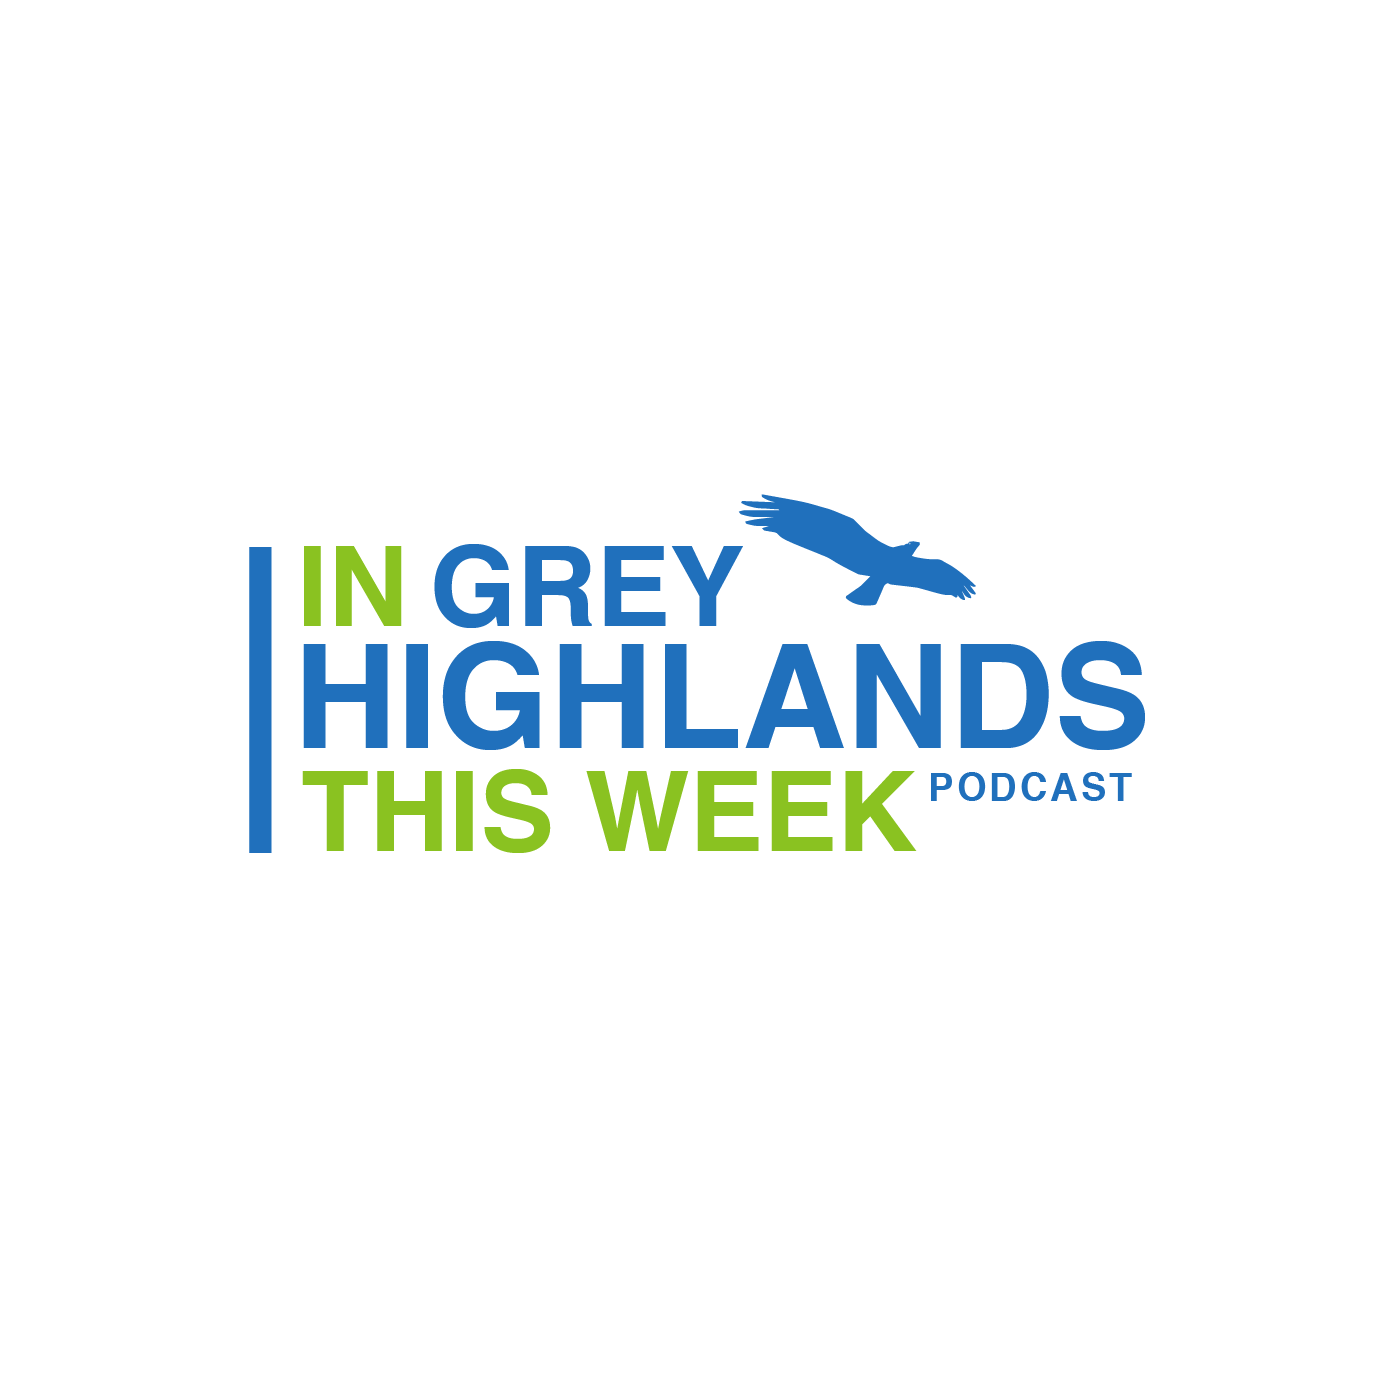 In Grey Highlands This Week show art